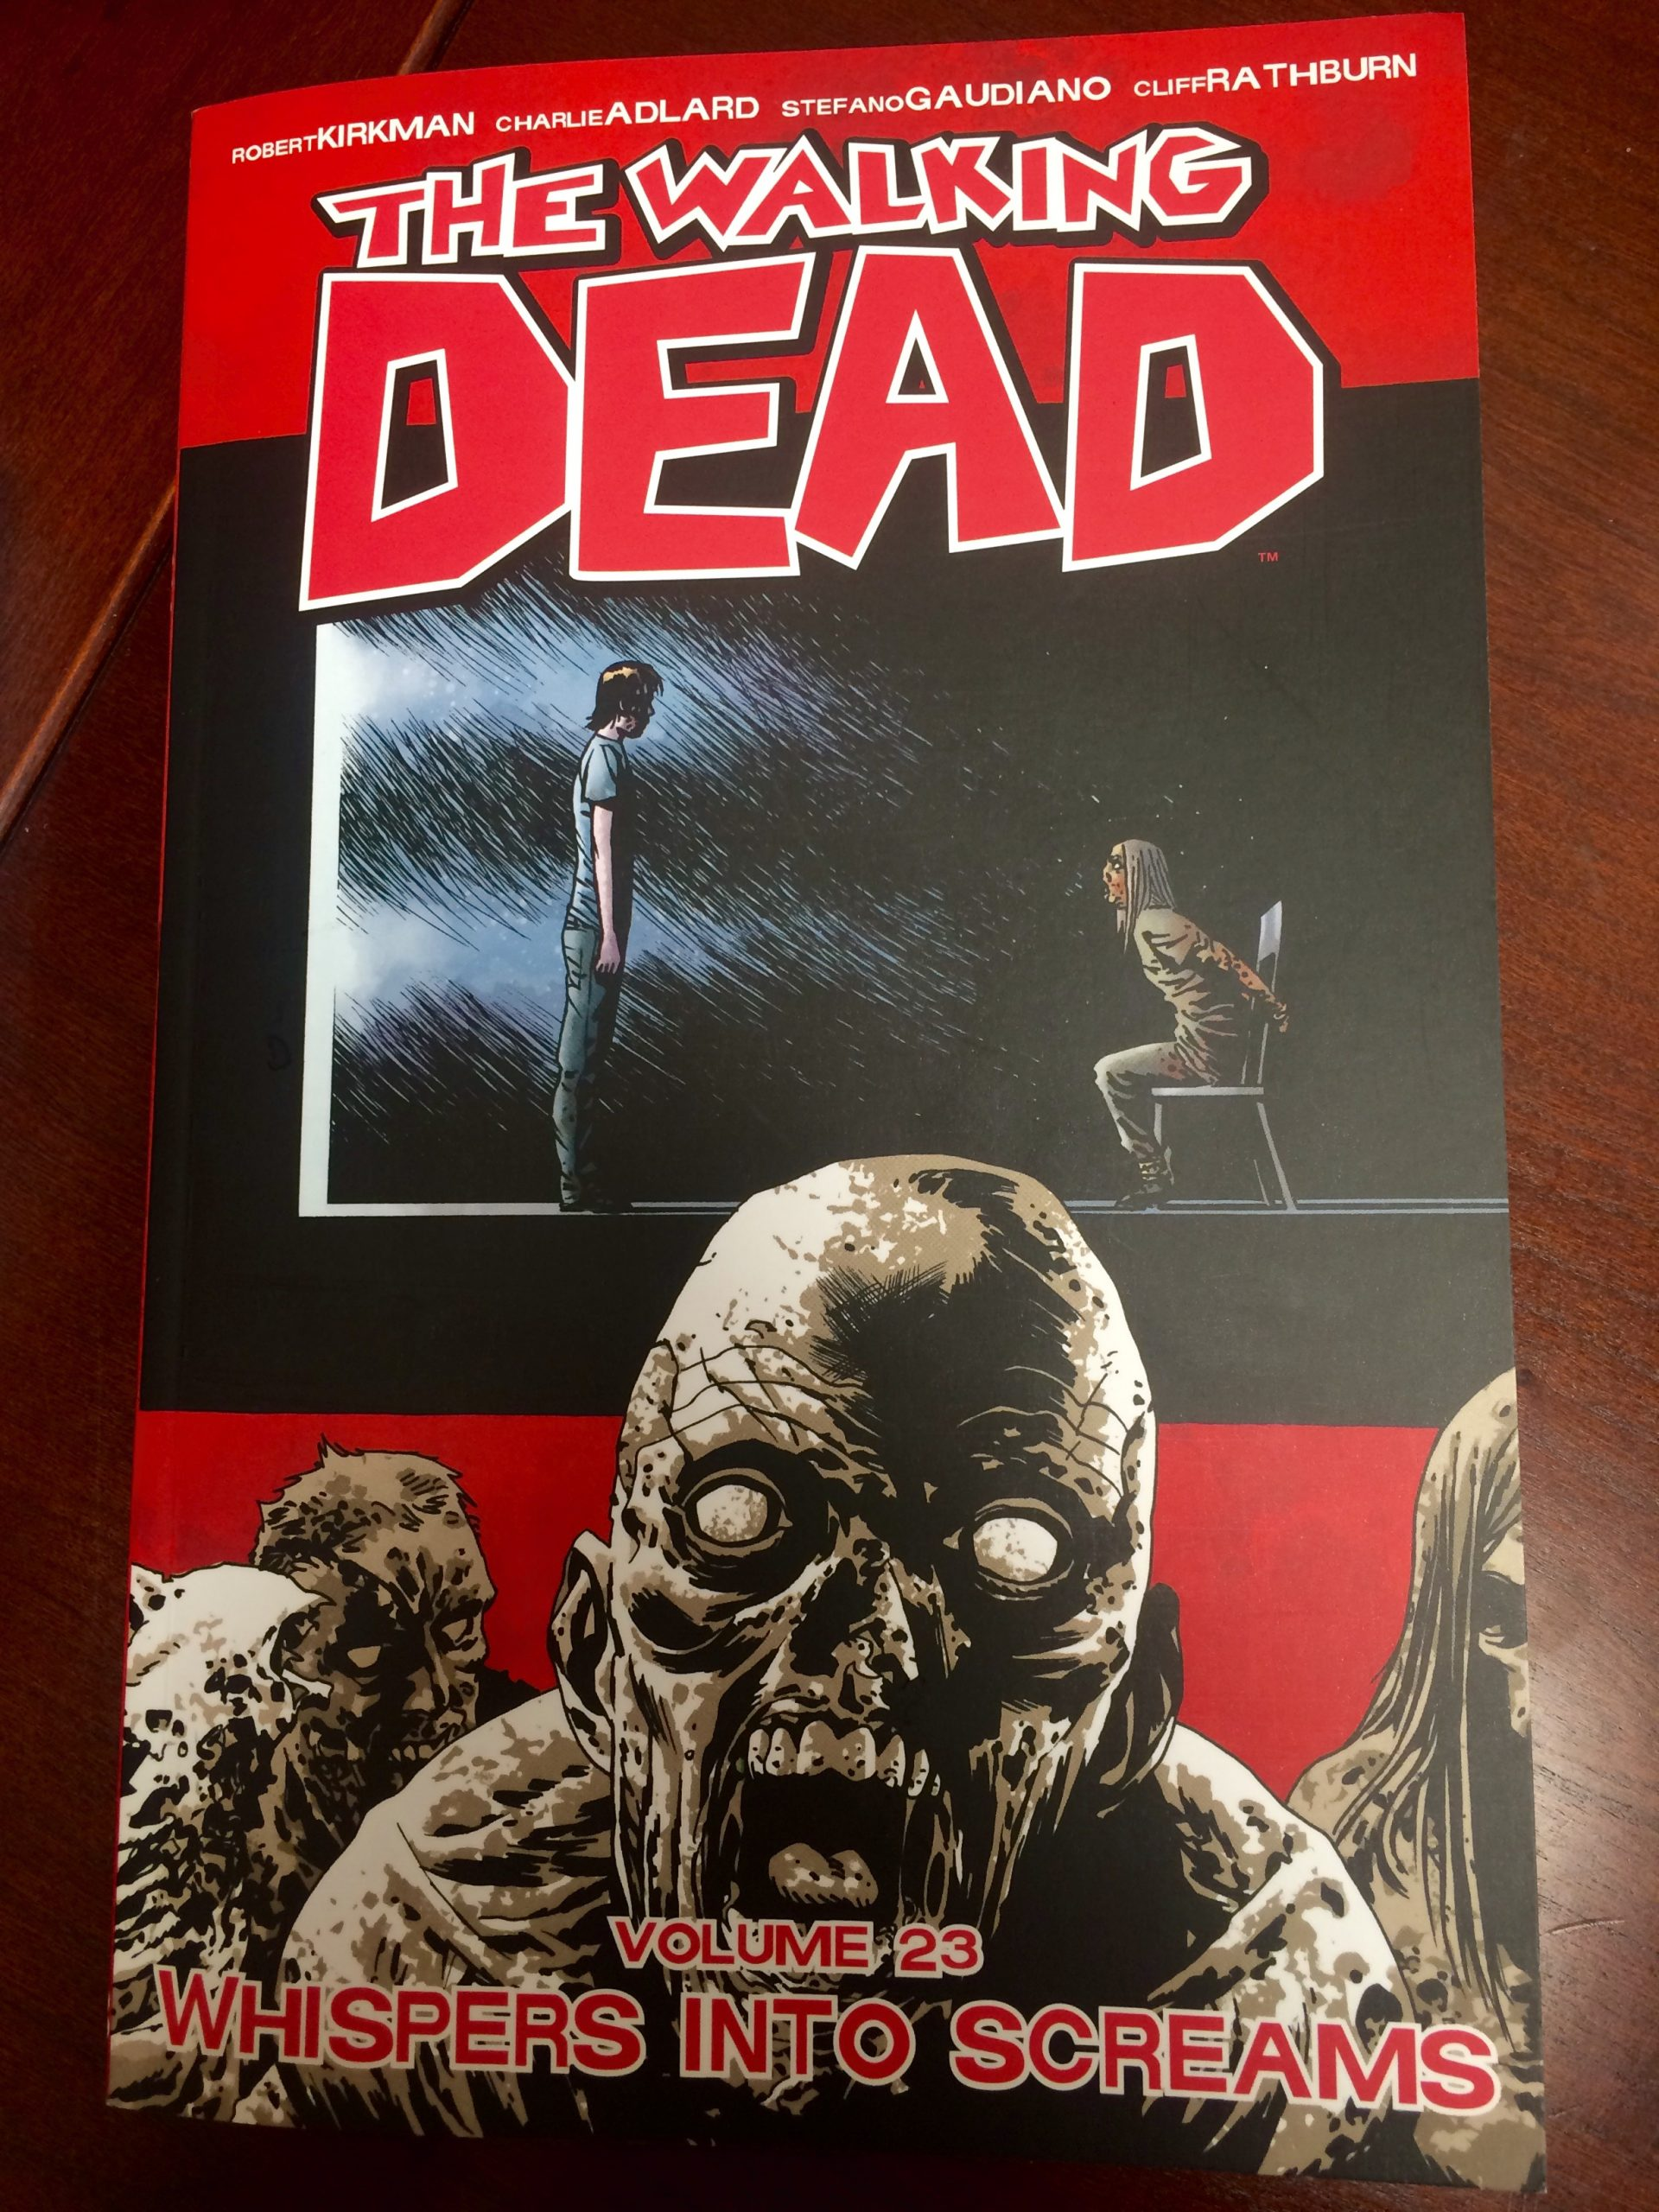 The Walking Dead Volume 23 Whispers Into Screams